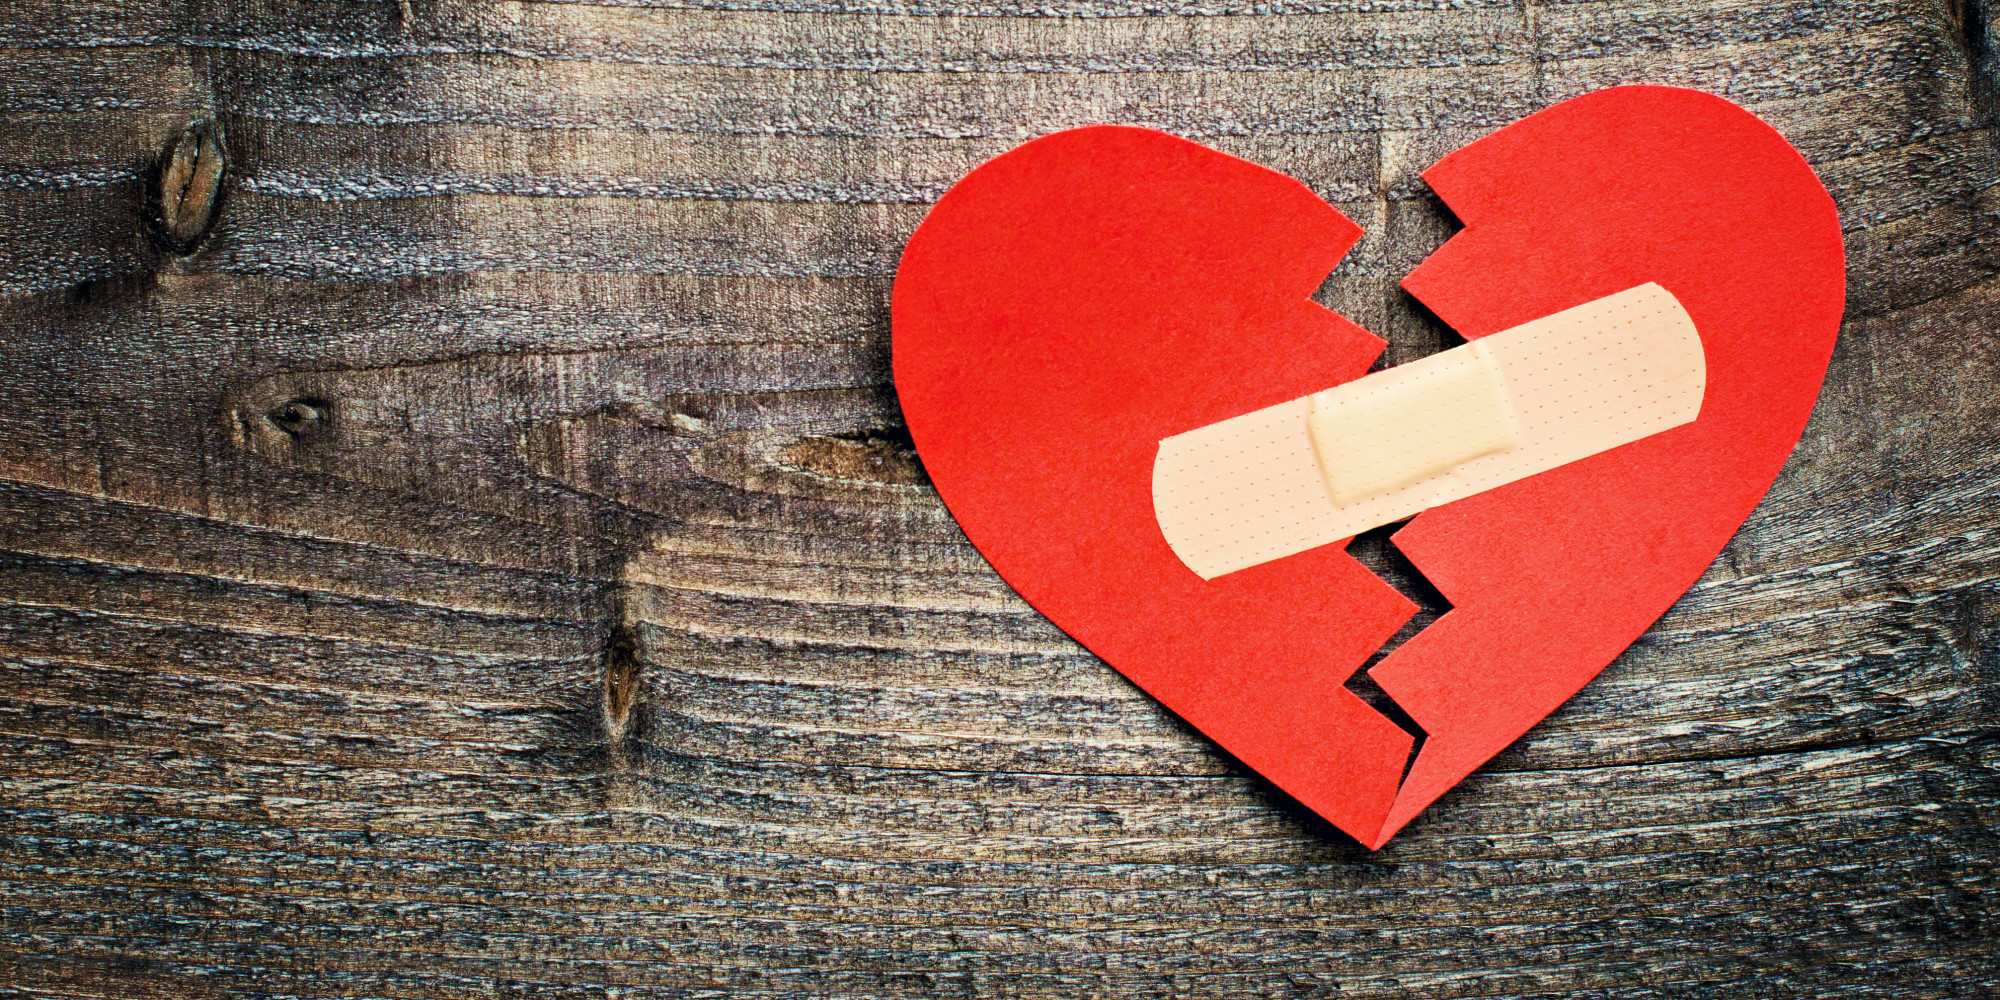 Broken Heart: Research Suggests You Can Literally Die From A Broken